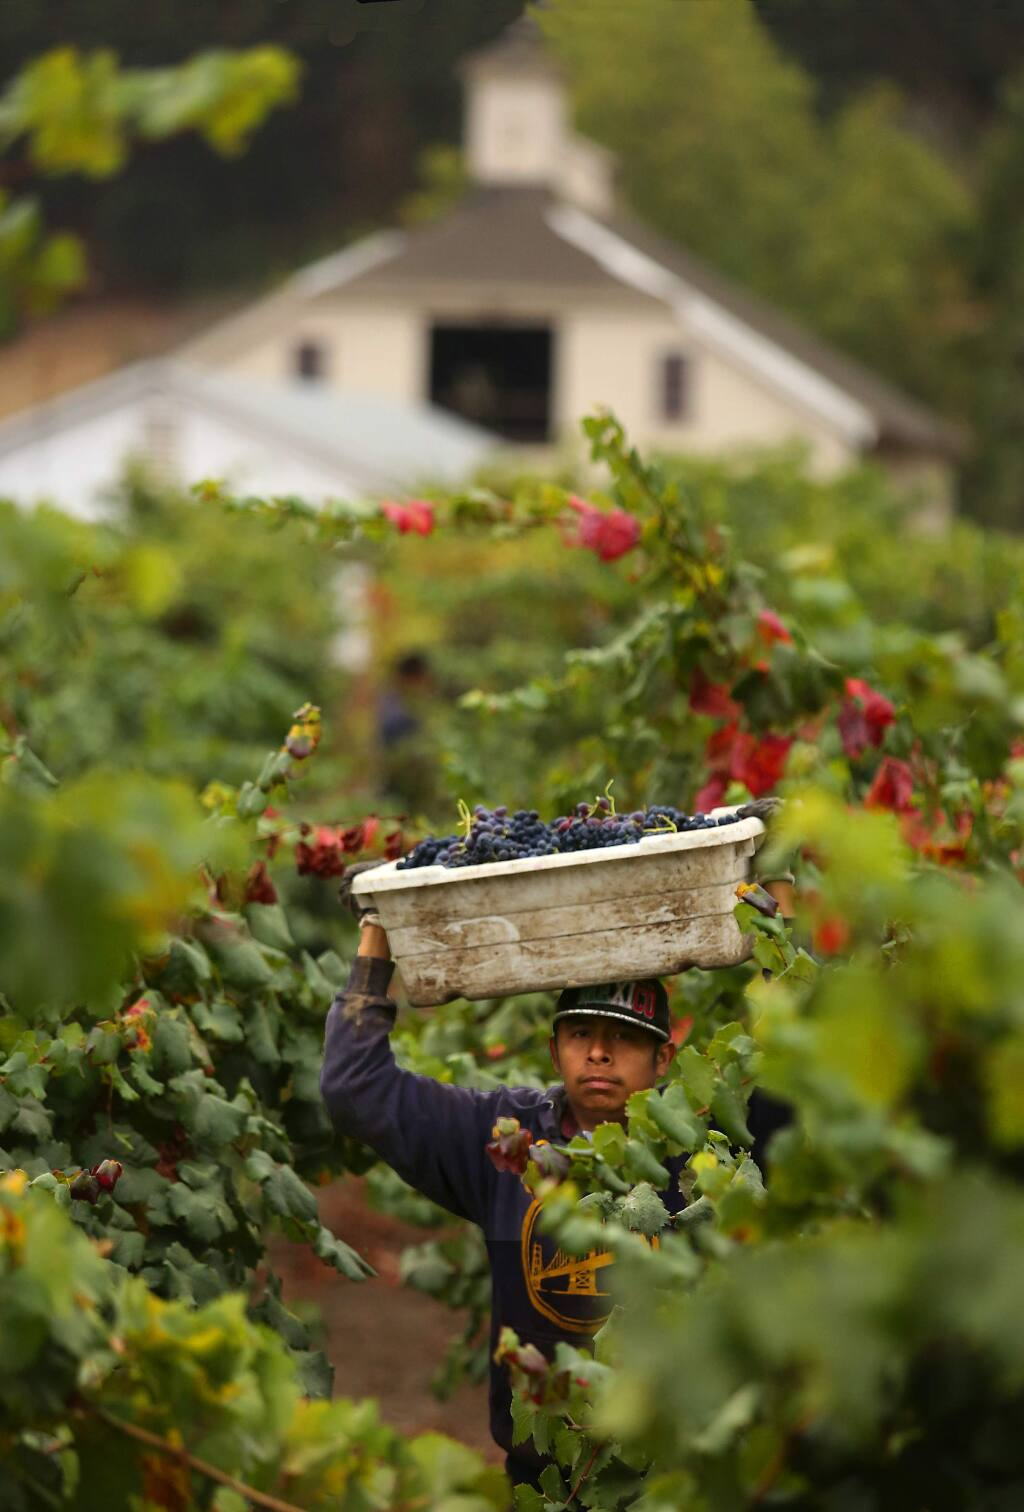 Workers run lugs filled with grapes at the Pagani Ranch along Hwy 12 in the Sonoma Valley. (John Burgess/The Press Democrat)